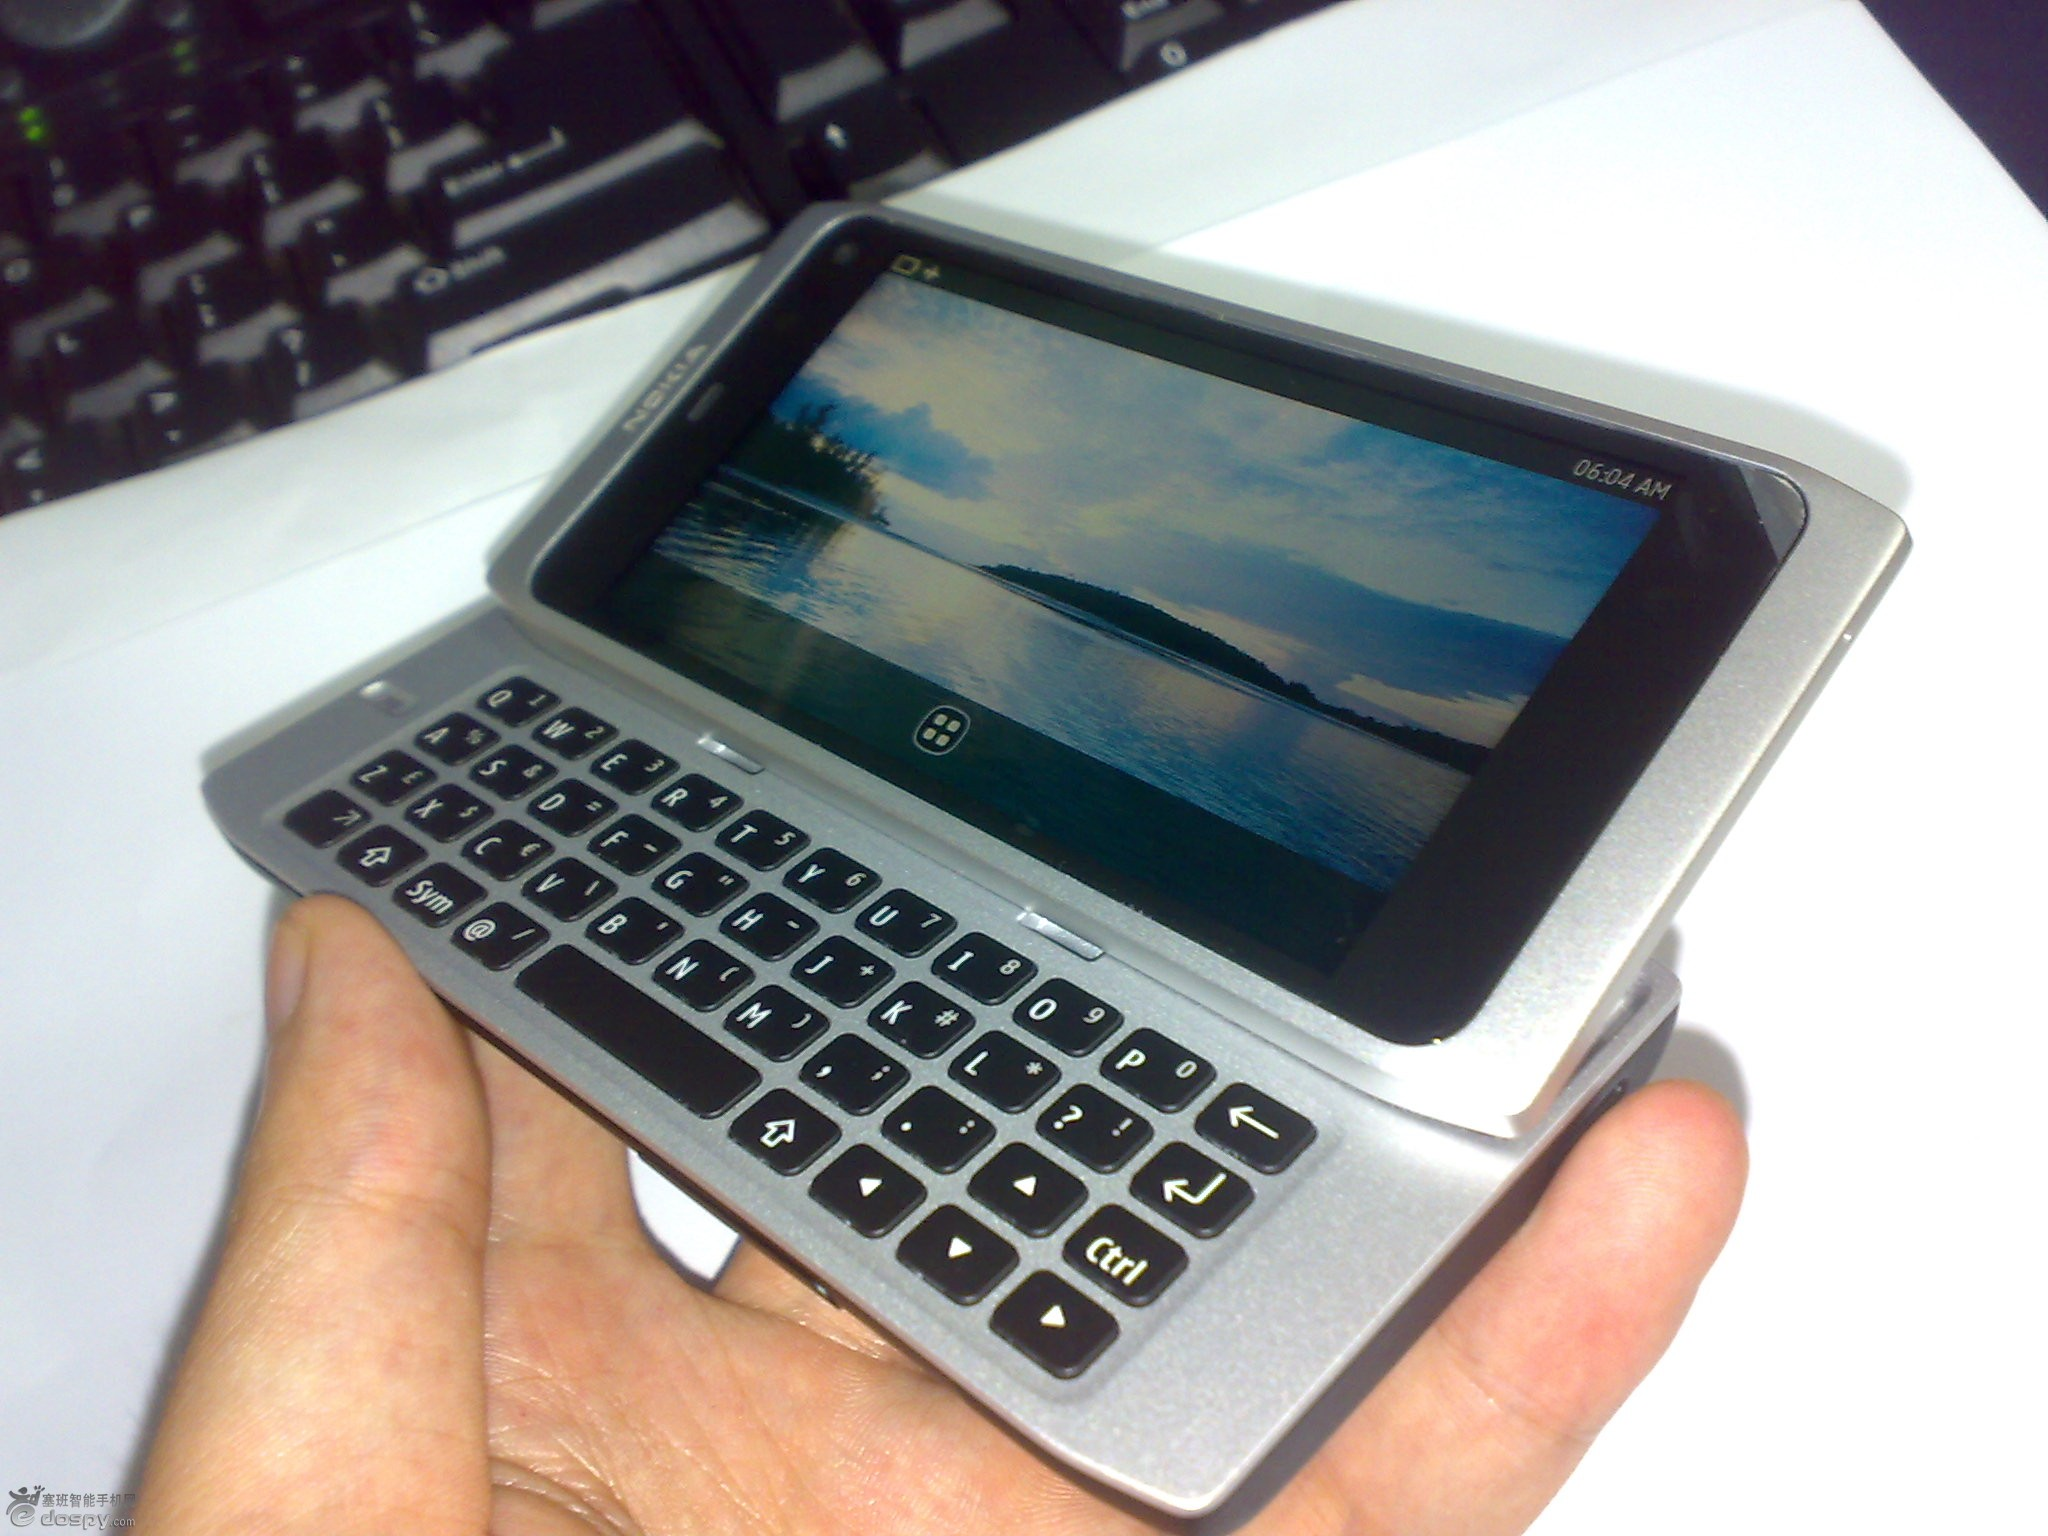 Nokia reportedly drops first MeeGo handset before launch